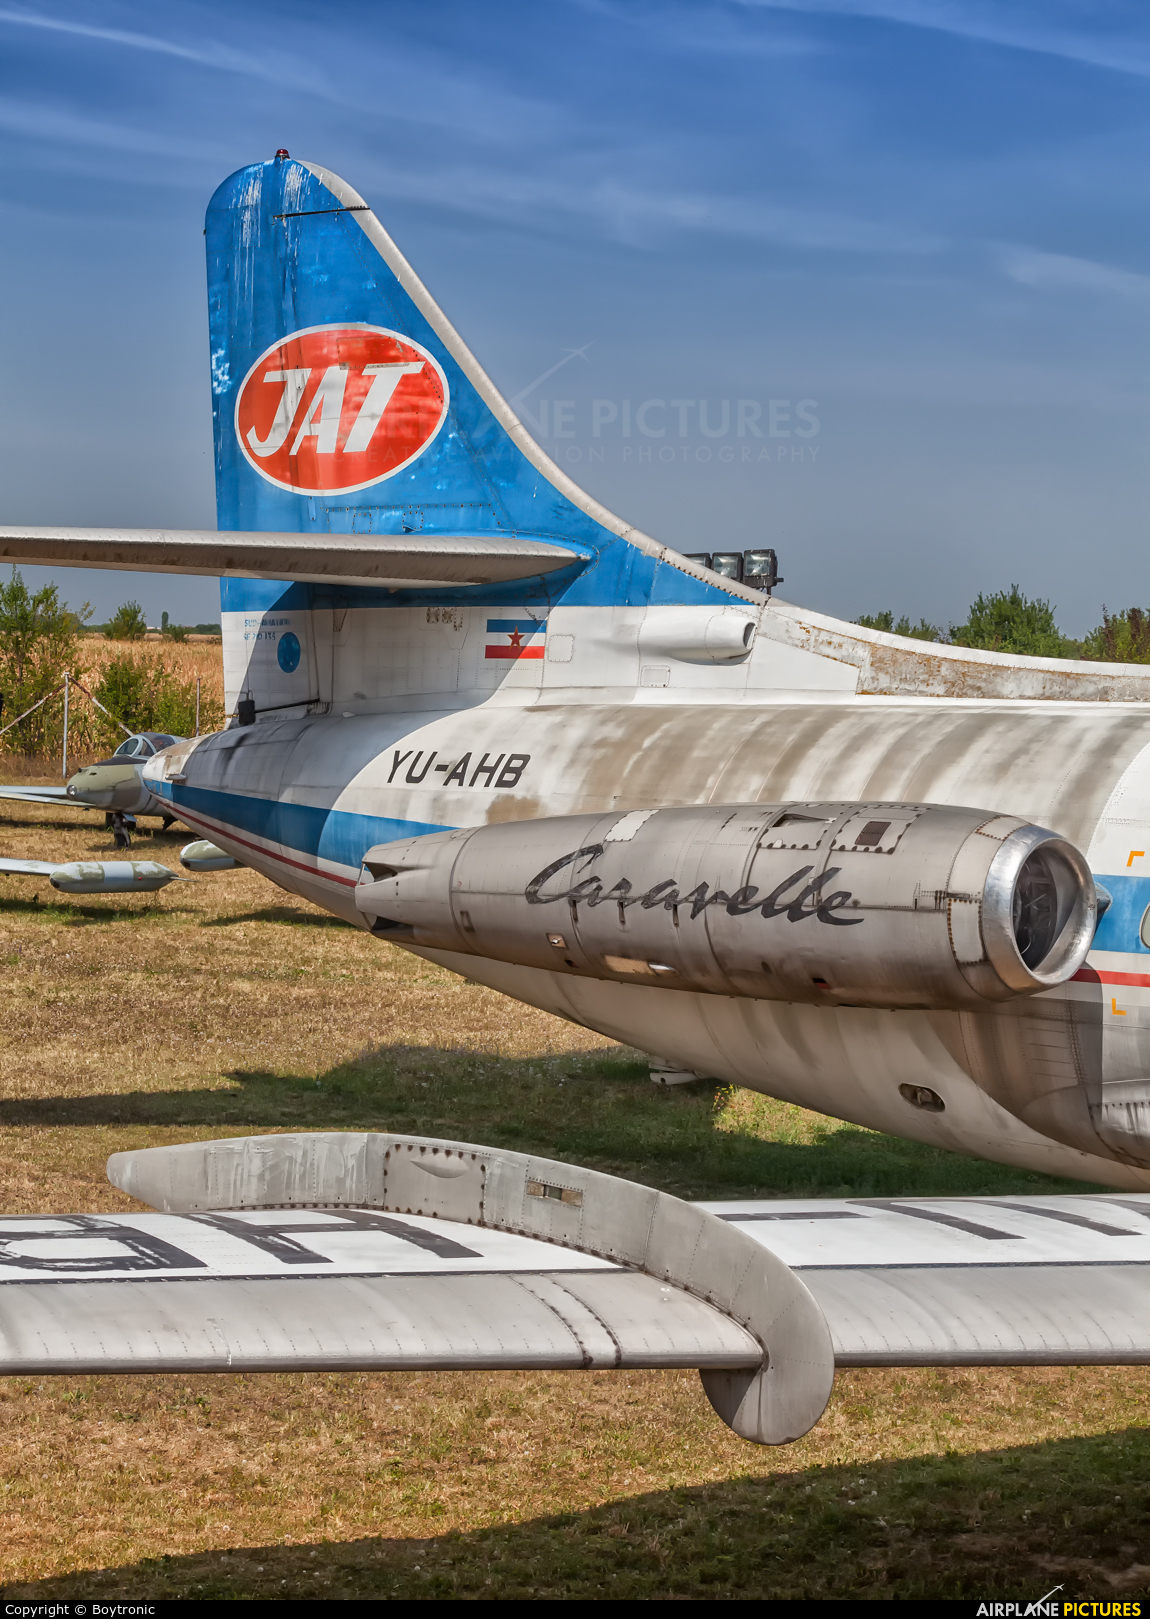 JAT - Yugoslav Airlines YU-AHB aircraft at Off Airport - Serbia